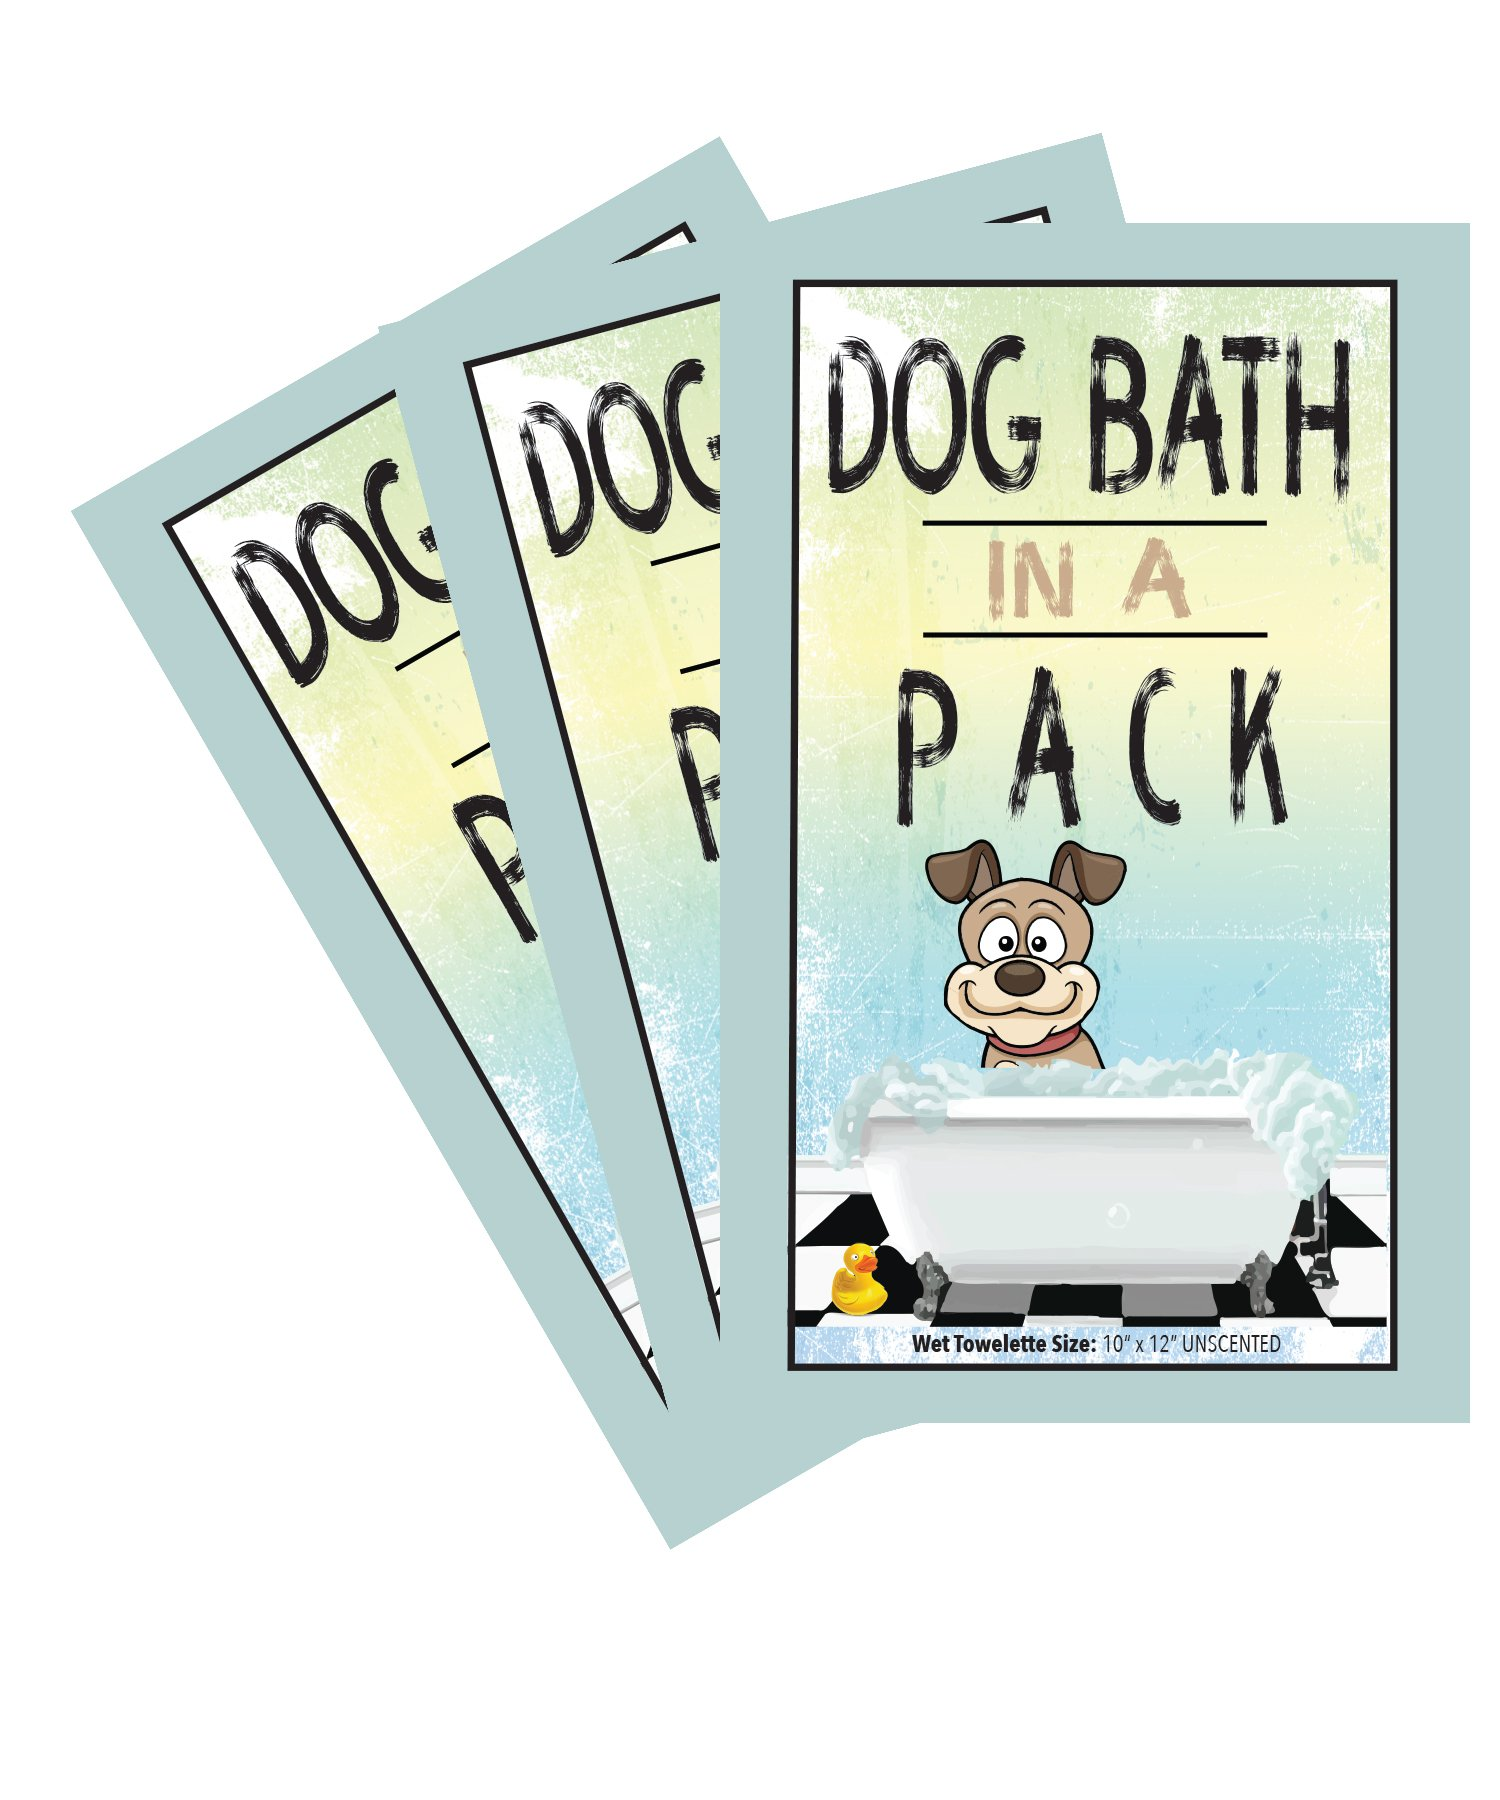 DOG BATH IN A PACKNEW Bath and Grooming Moist Wipes - 48 Individual Packs Per OrderON SALE